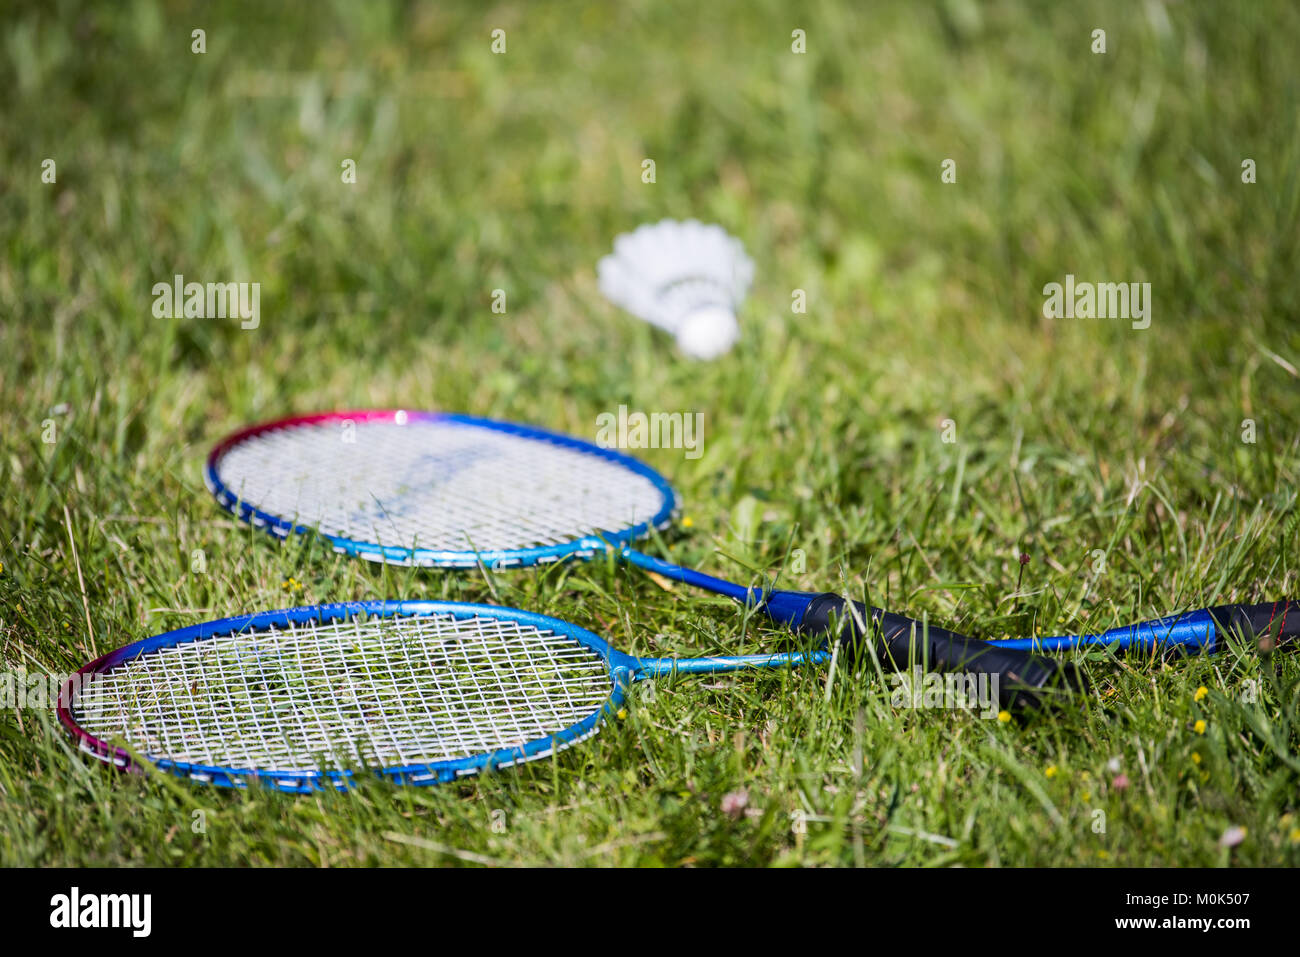 Exercise break during a summer vacation badminton game - Stock Image